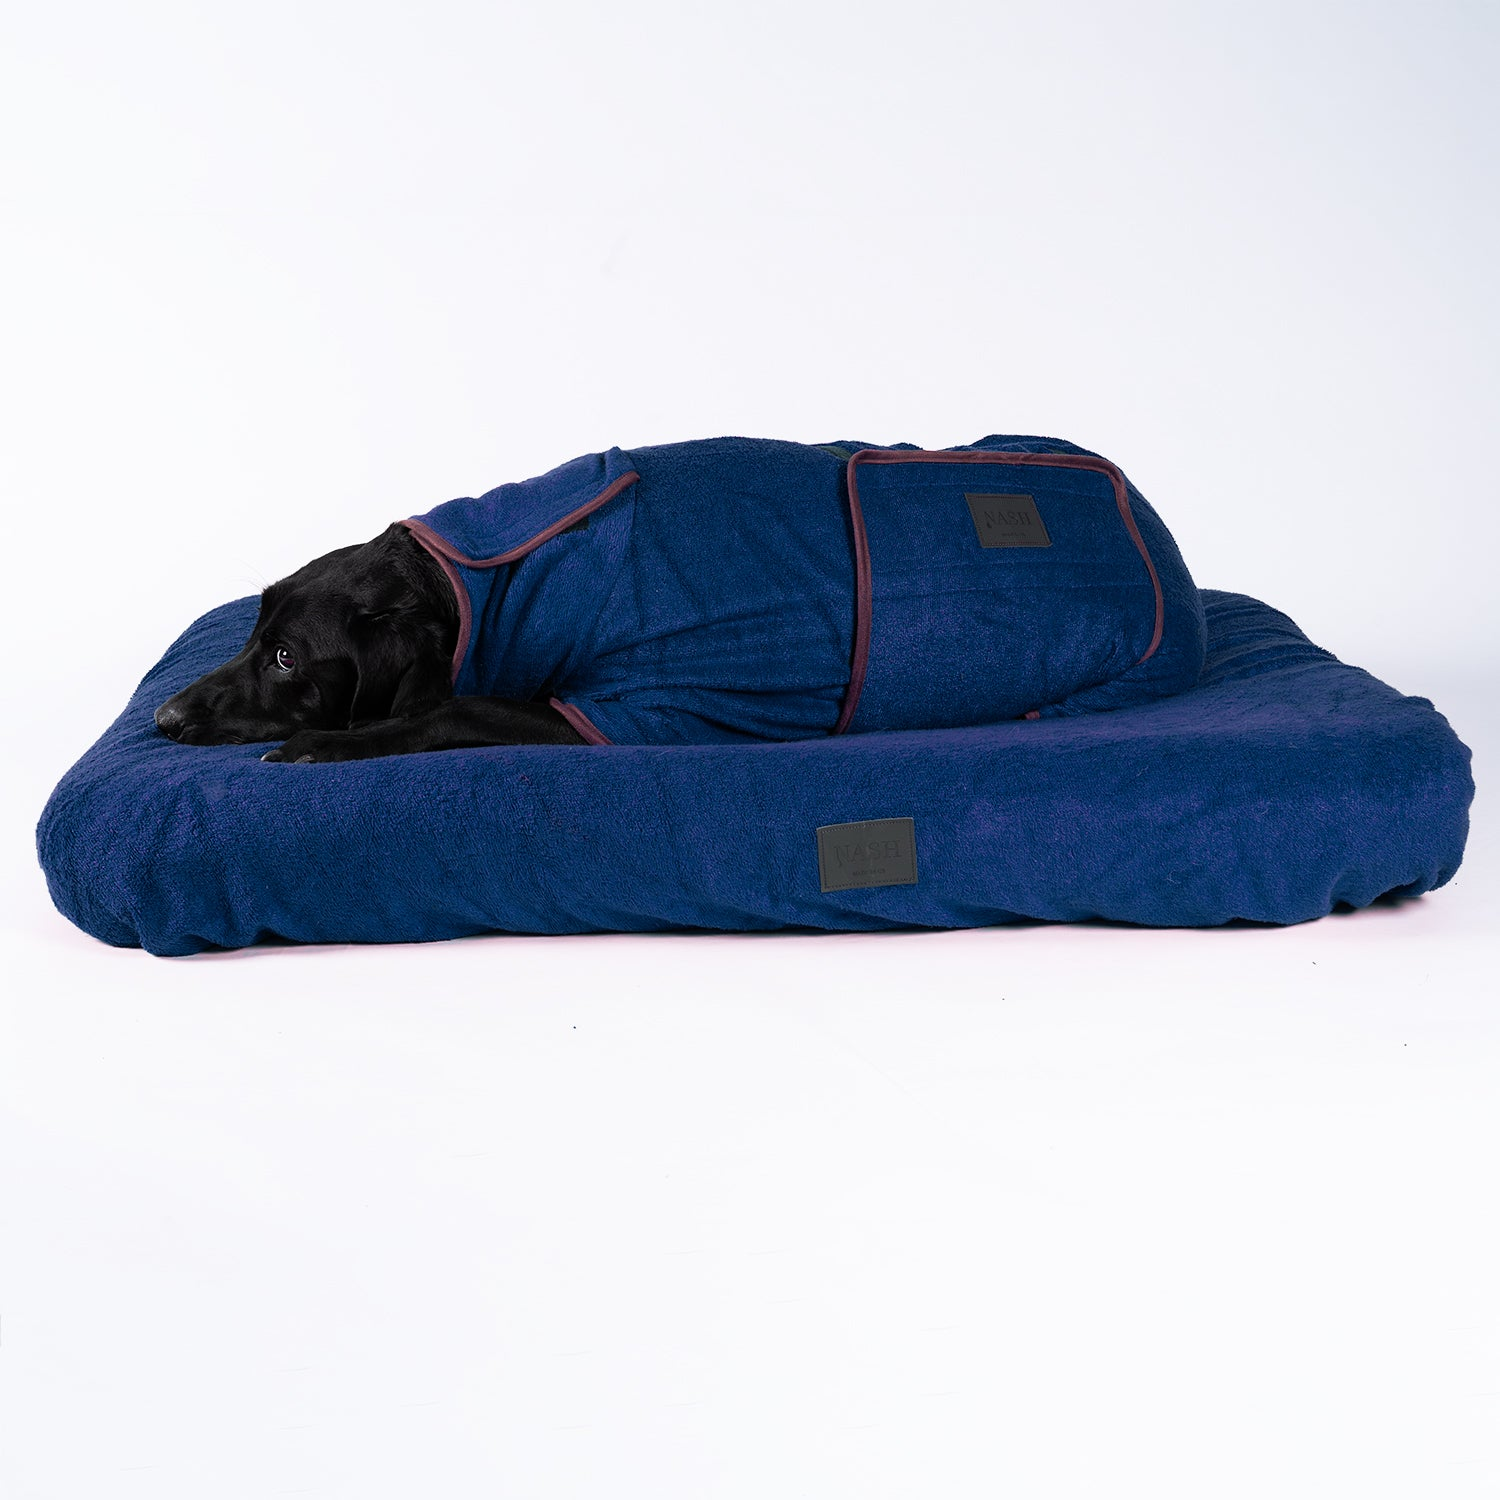 Bamboo Dog Bed Cover - Navy - Shop Bamboo Dog Drying Coats, bed covers, drying mitts & throw Online!